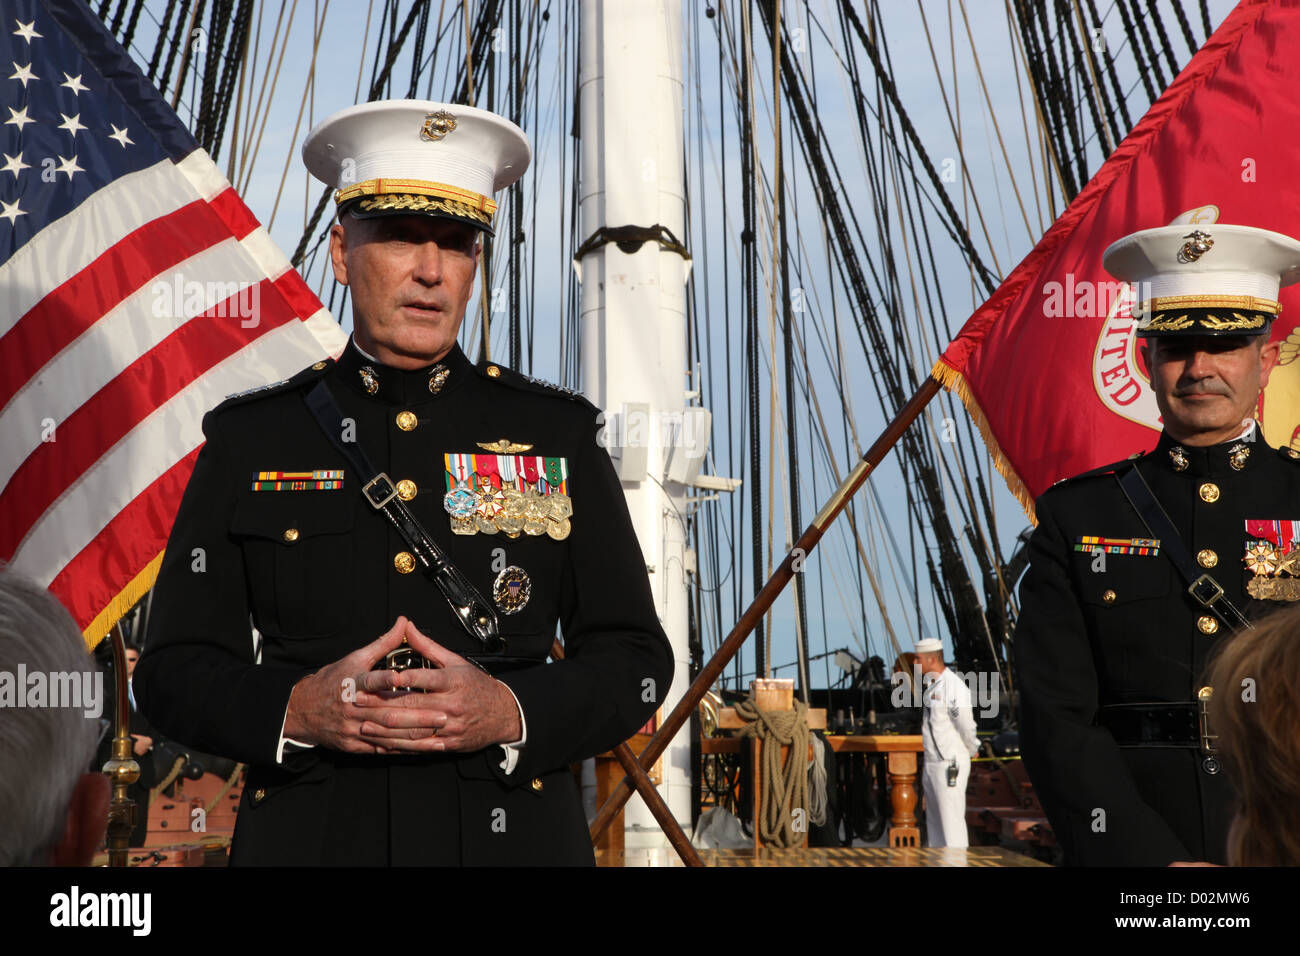 US Marine General Joseph Dunford, assistant commandant of the Marine Corps during a ceremony aboard the USS Constitution - Stock Image